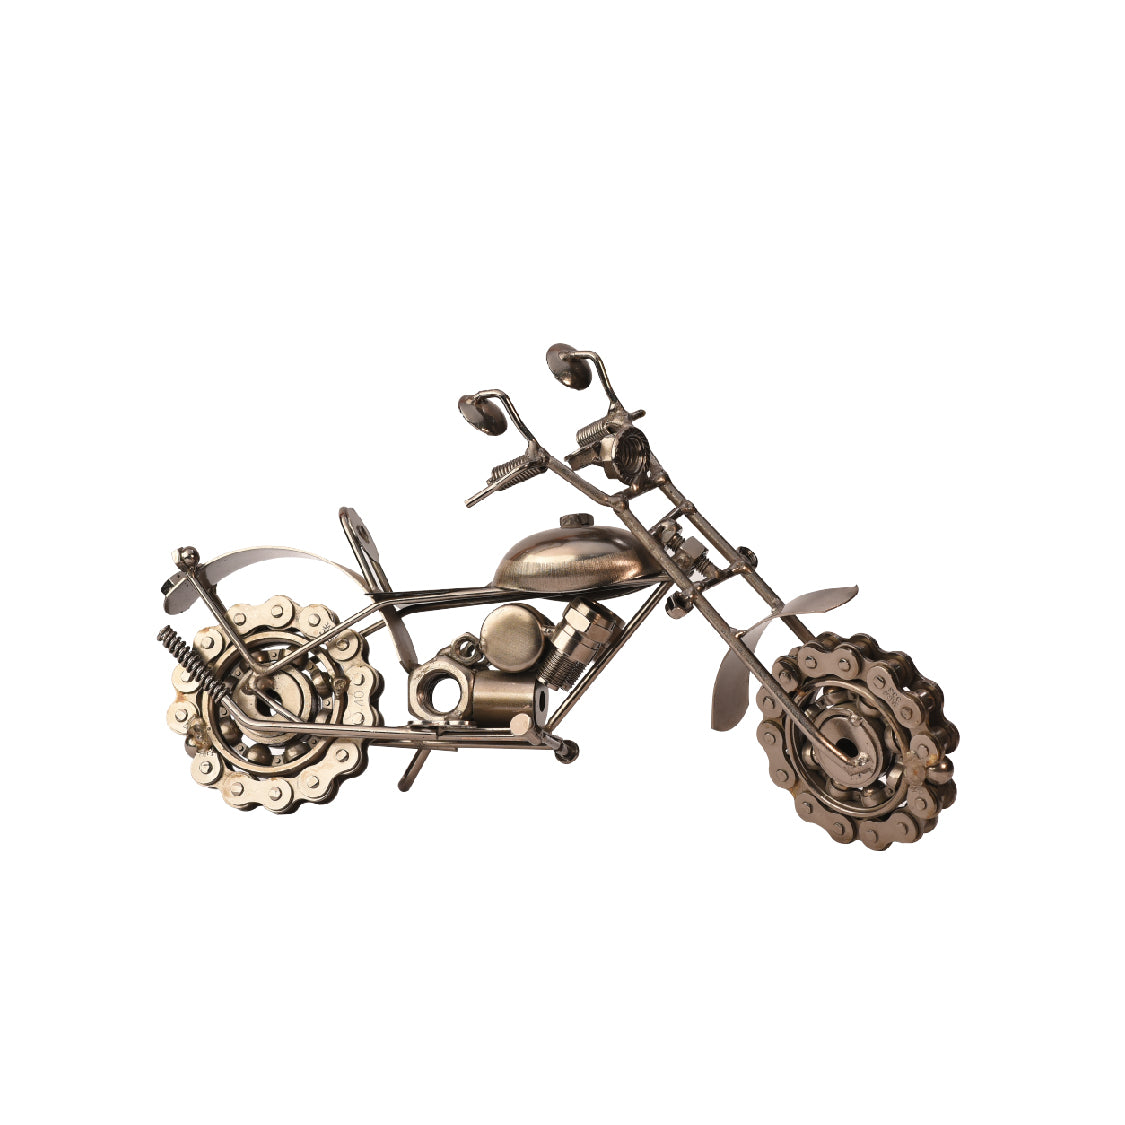 Lavish Bullet Bike Sculpture